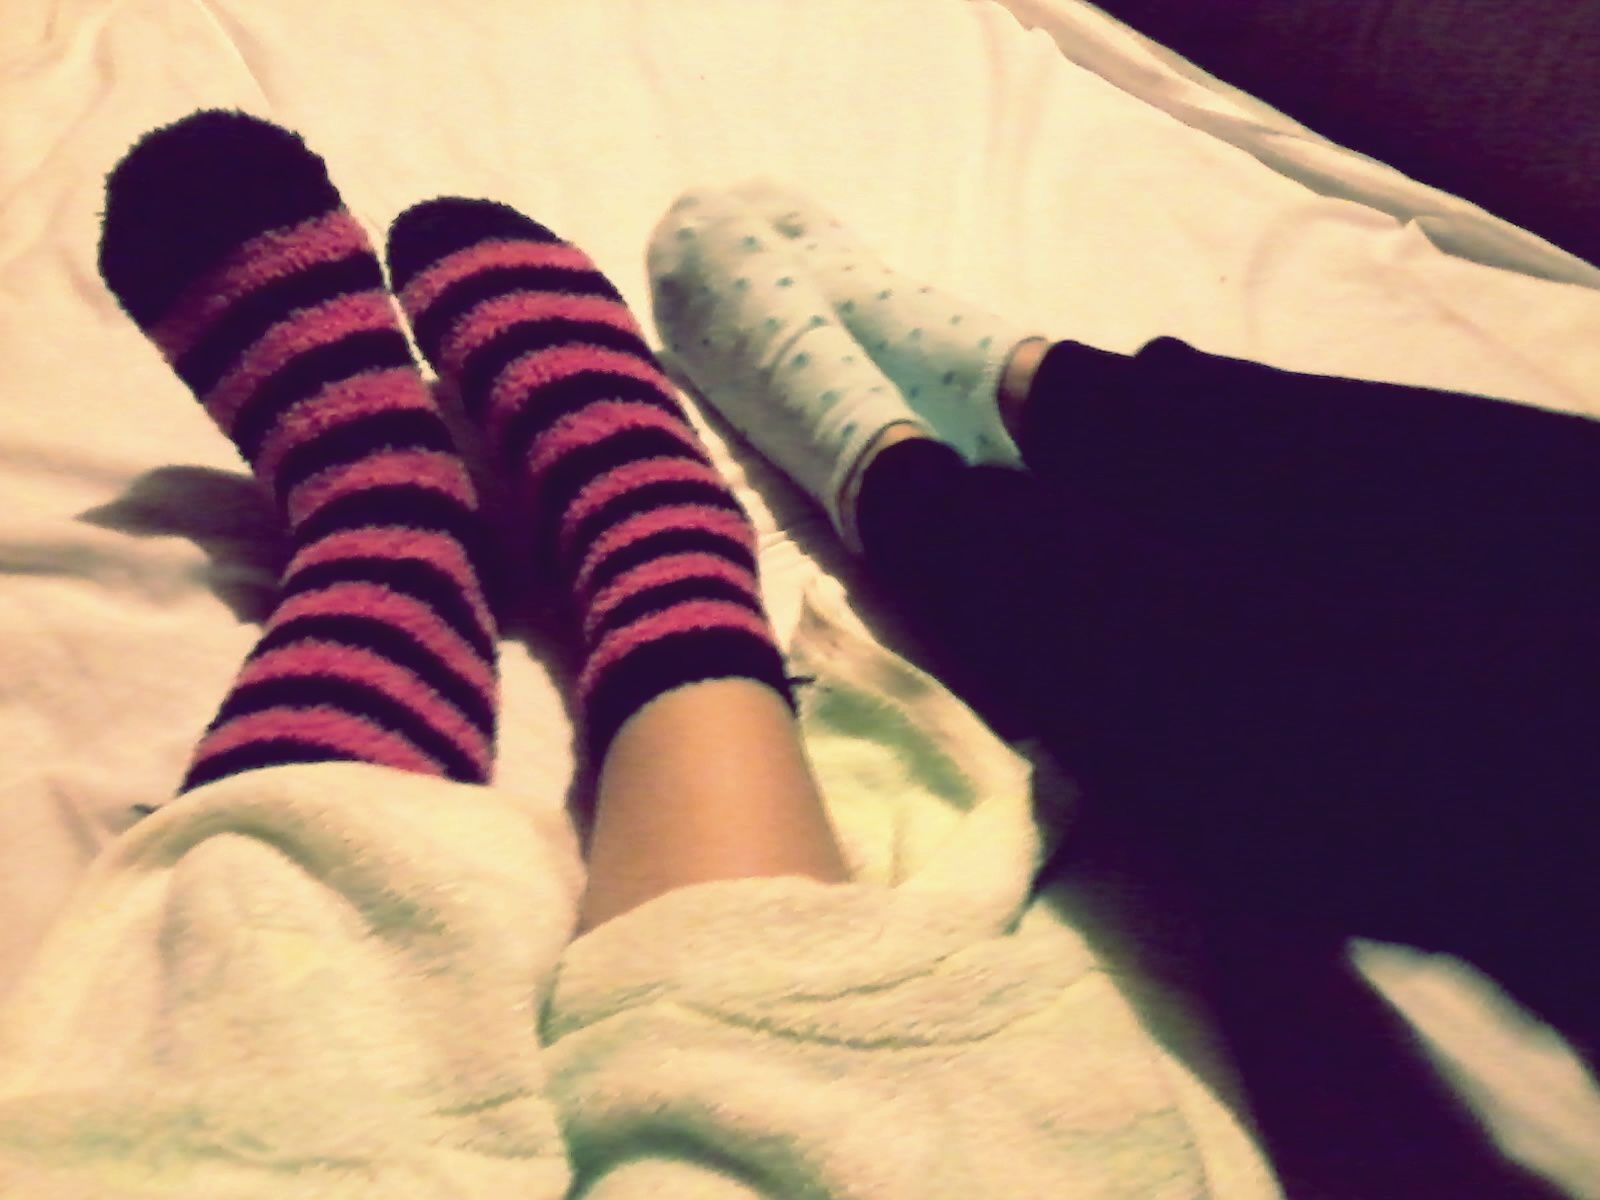 Socks keep us warm